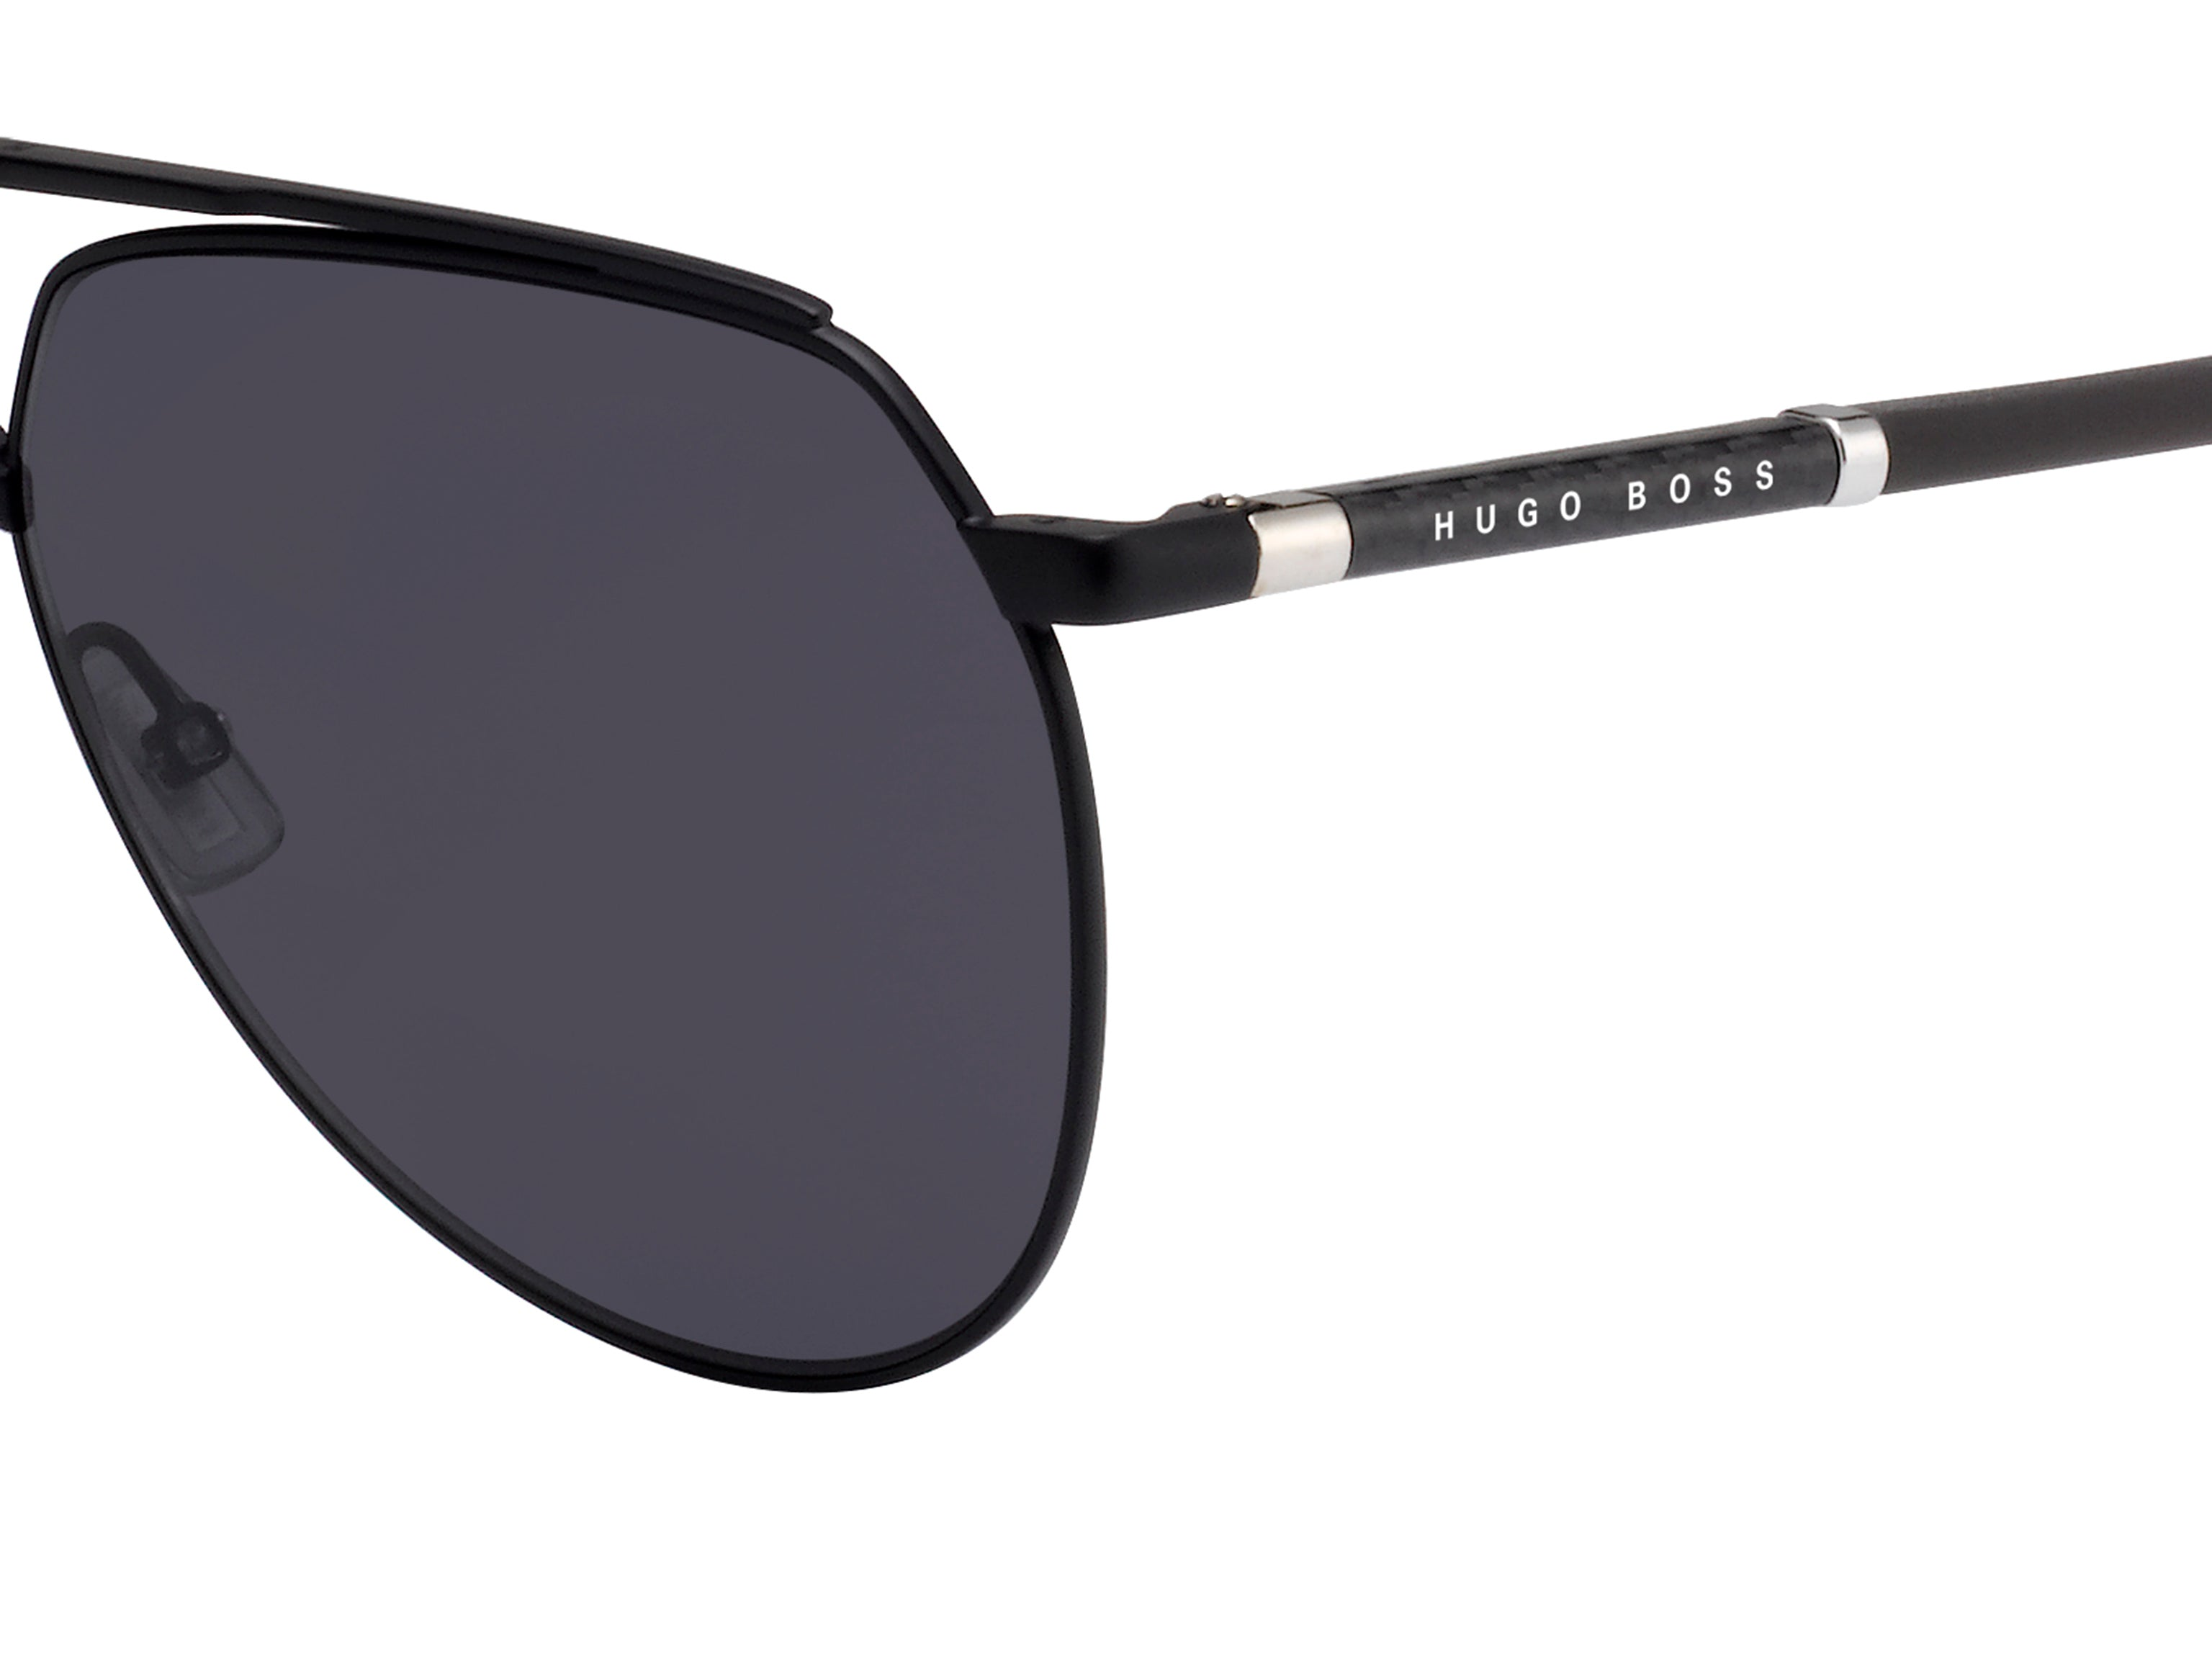 HUGO BOSS 1130/S 003 IR